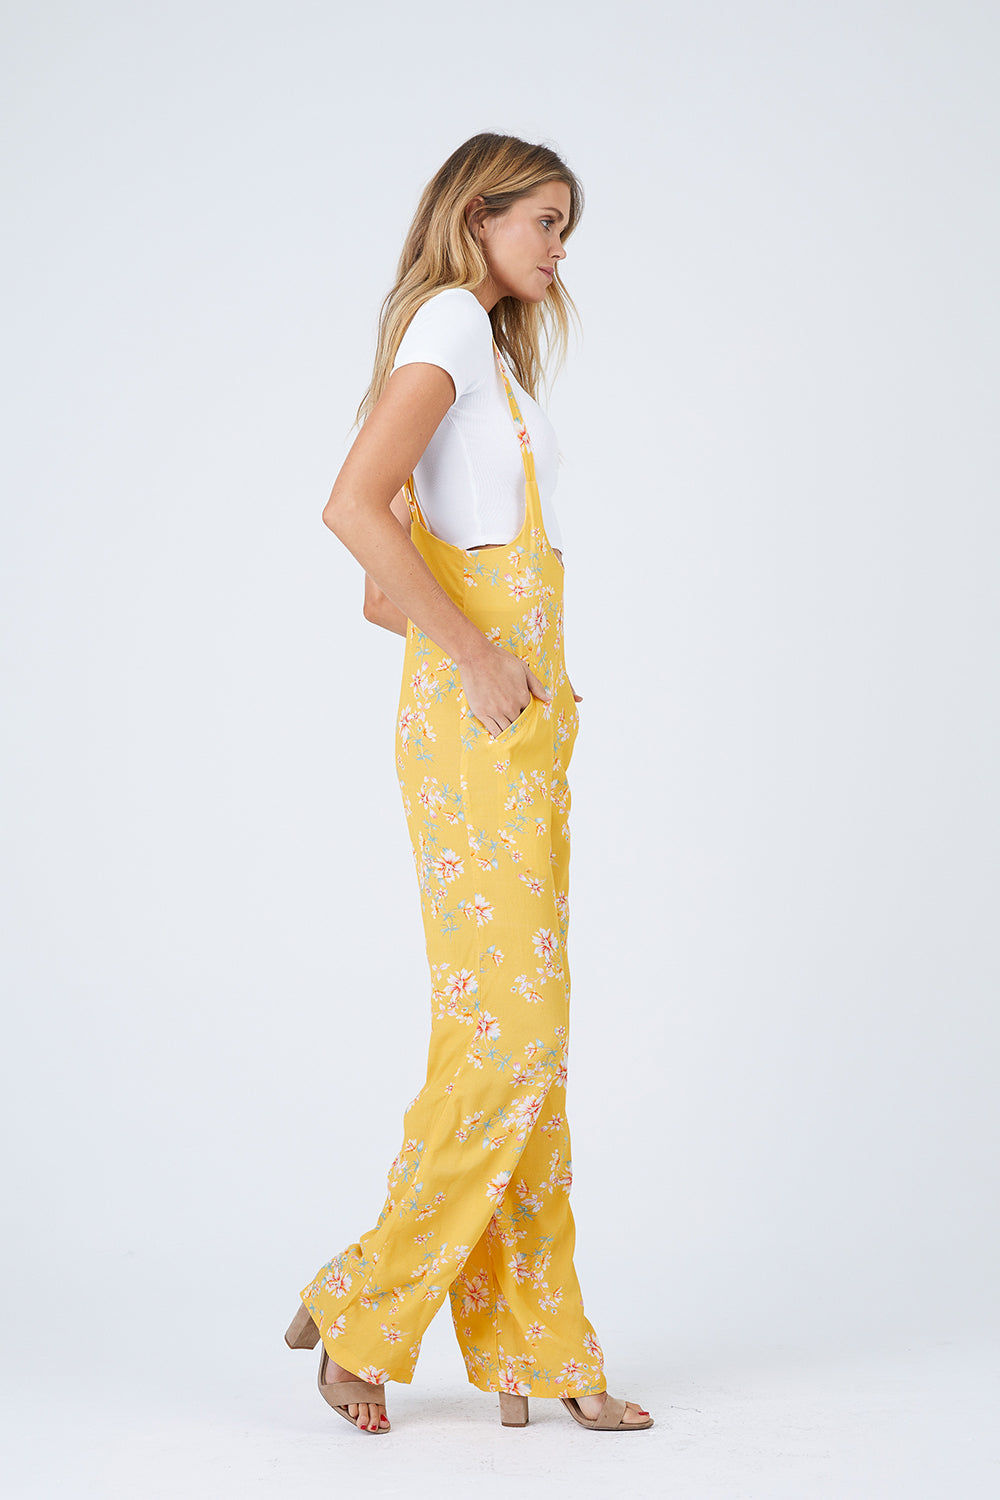 FLYNN SKYE Easy Rider Jumper - Touch Of Honey Jumpsuit | Touch Of Honey| Flynn Skye Easy Rider Jumper - Touch Of Honey Overall jumper Wide leg Thin straps at hight of waist Dry clean Made in Los Angeles Side View